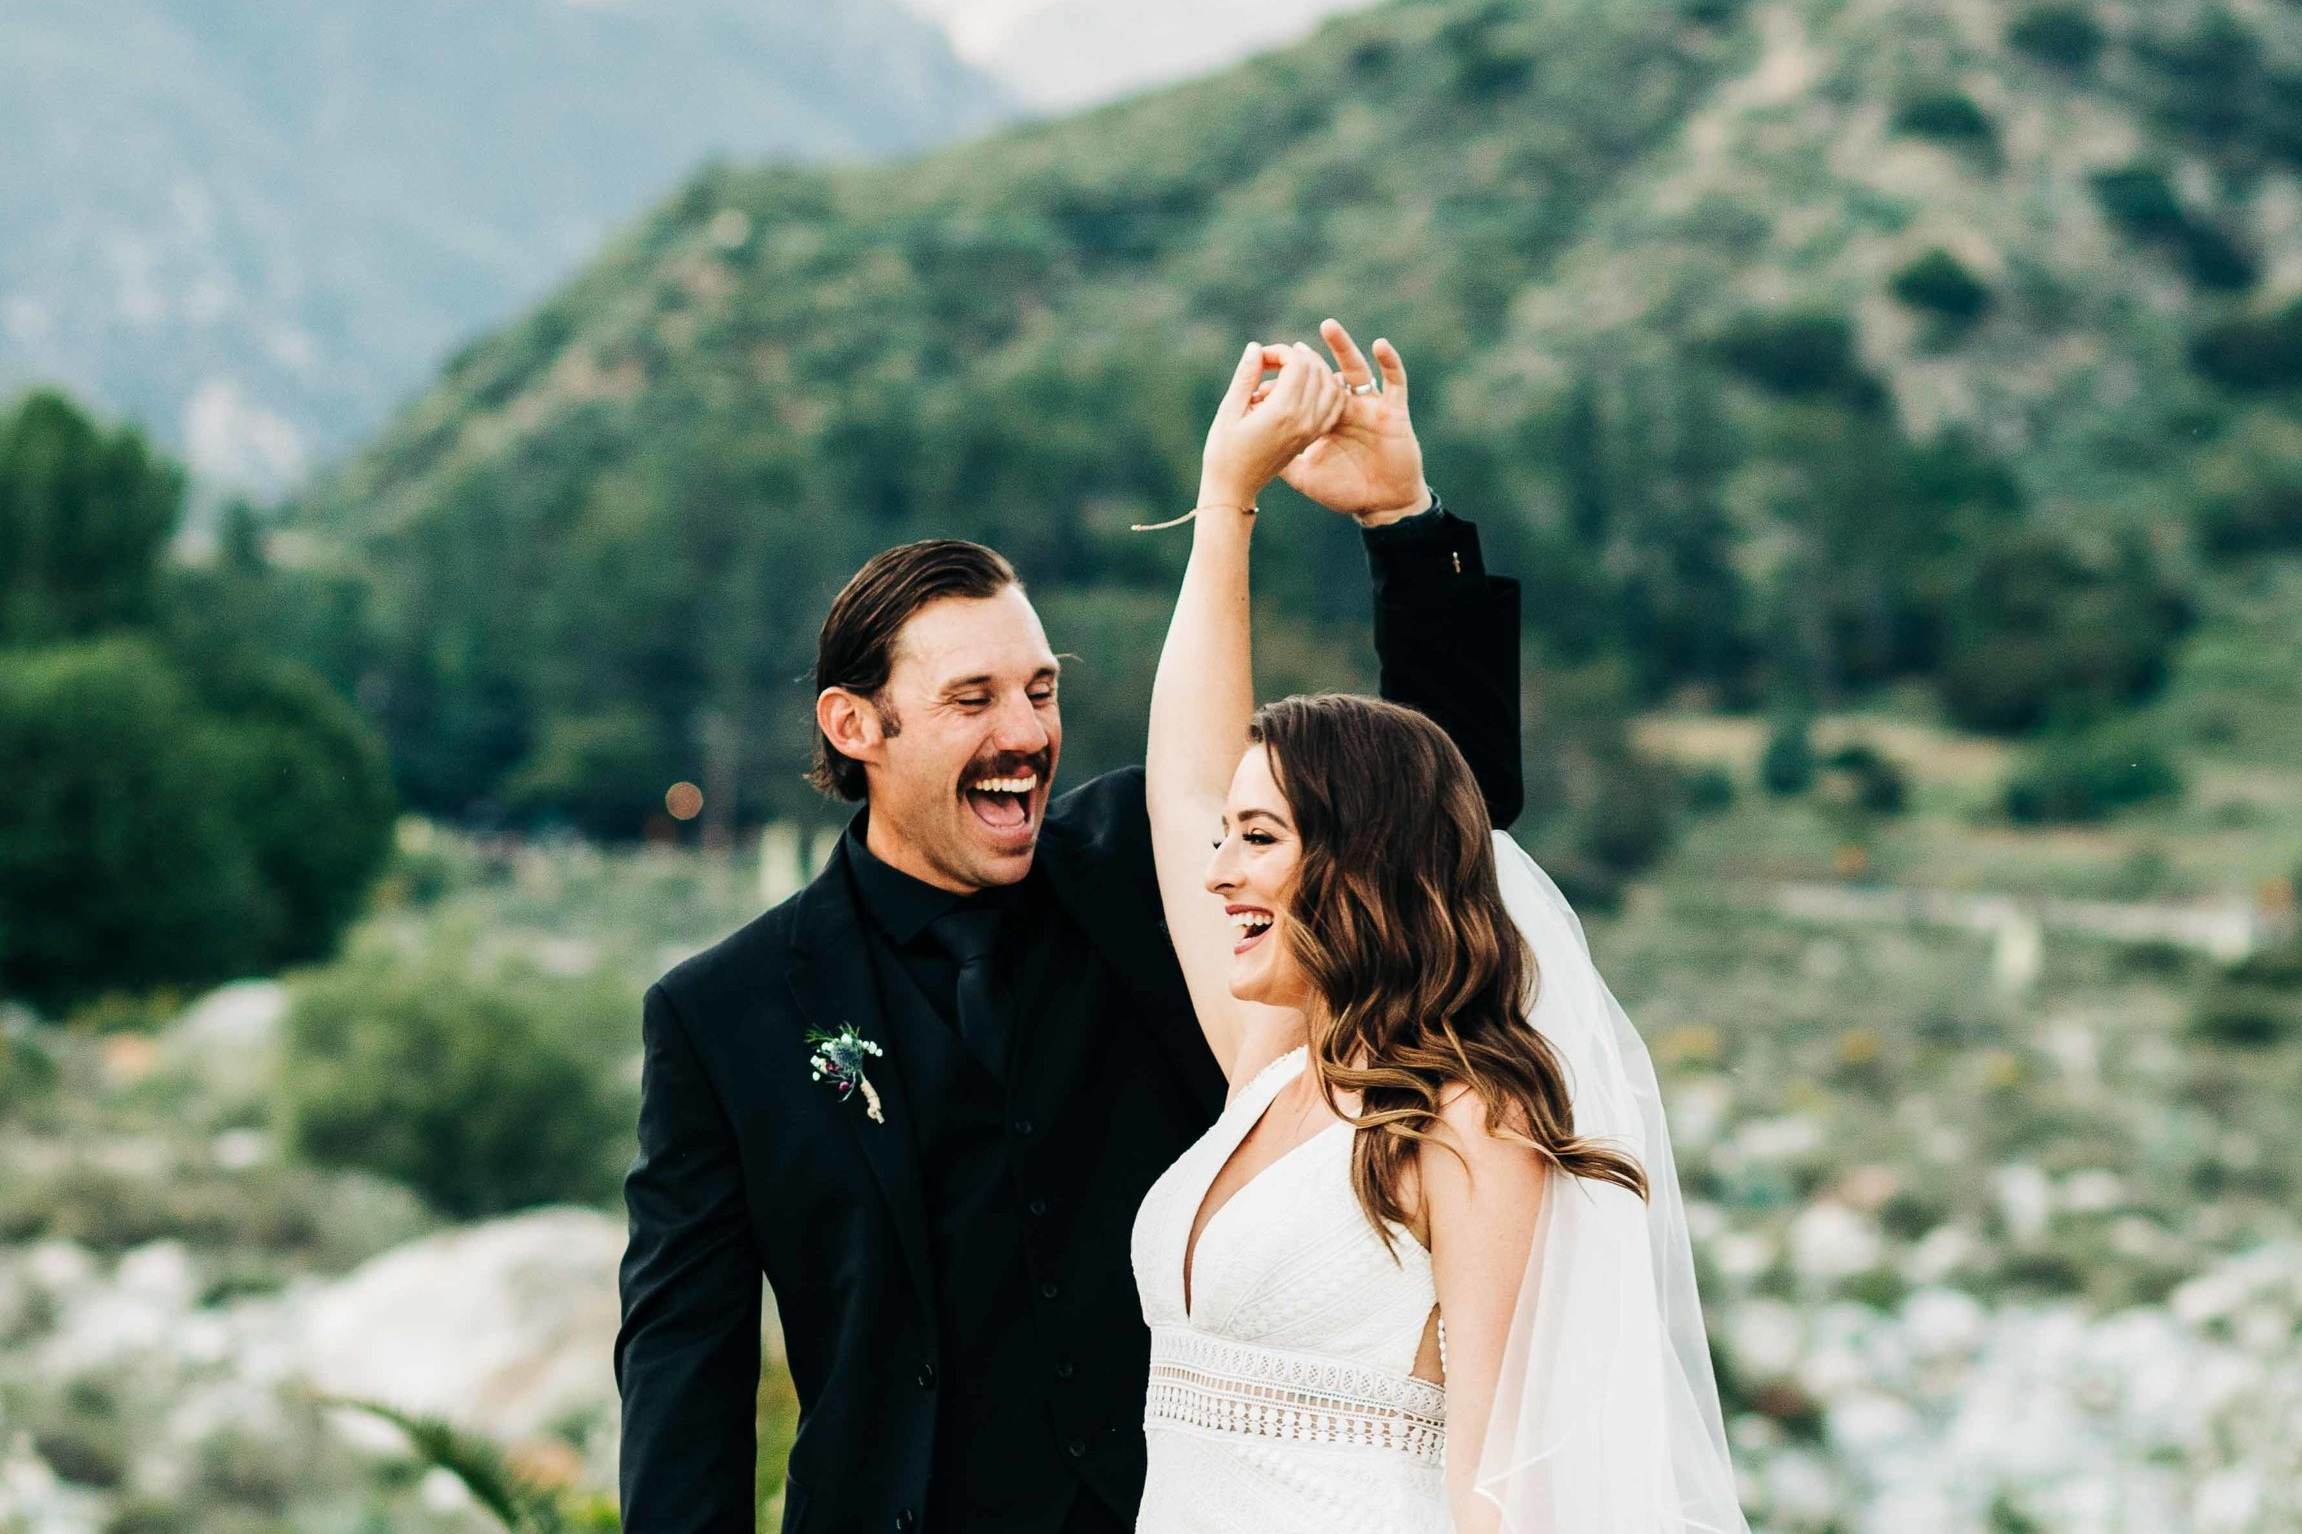 Jenna-Michael-Sweetpea-Ranch-Mt-Baldy-Wedding-Photos-Southern-California-wedding-Photographer_1-2.jpg